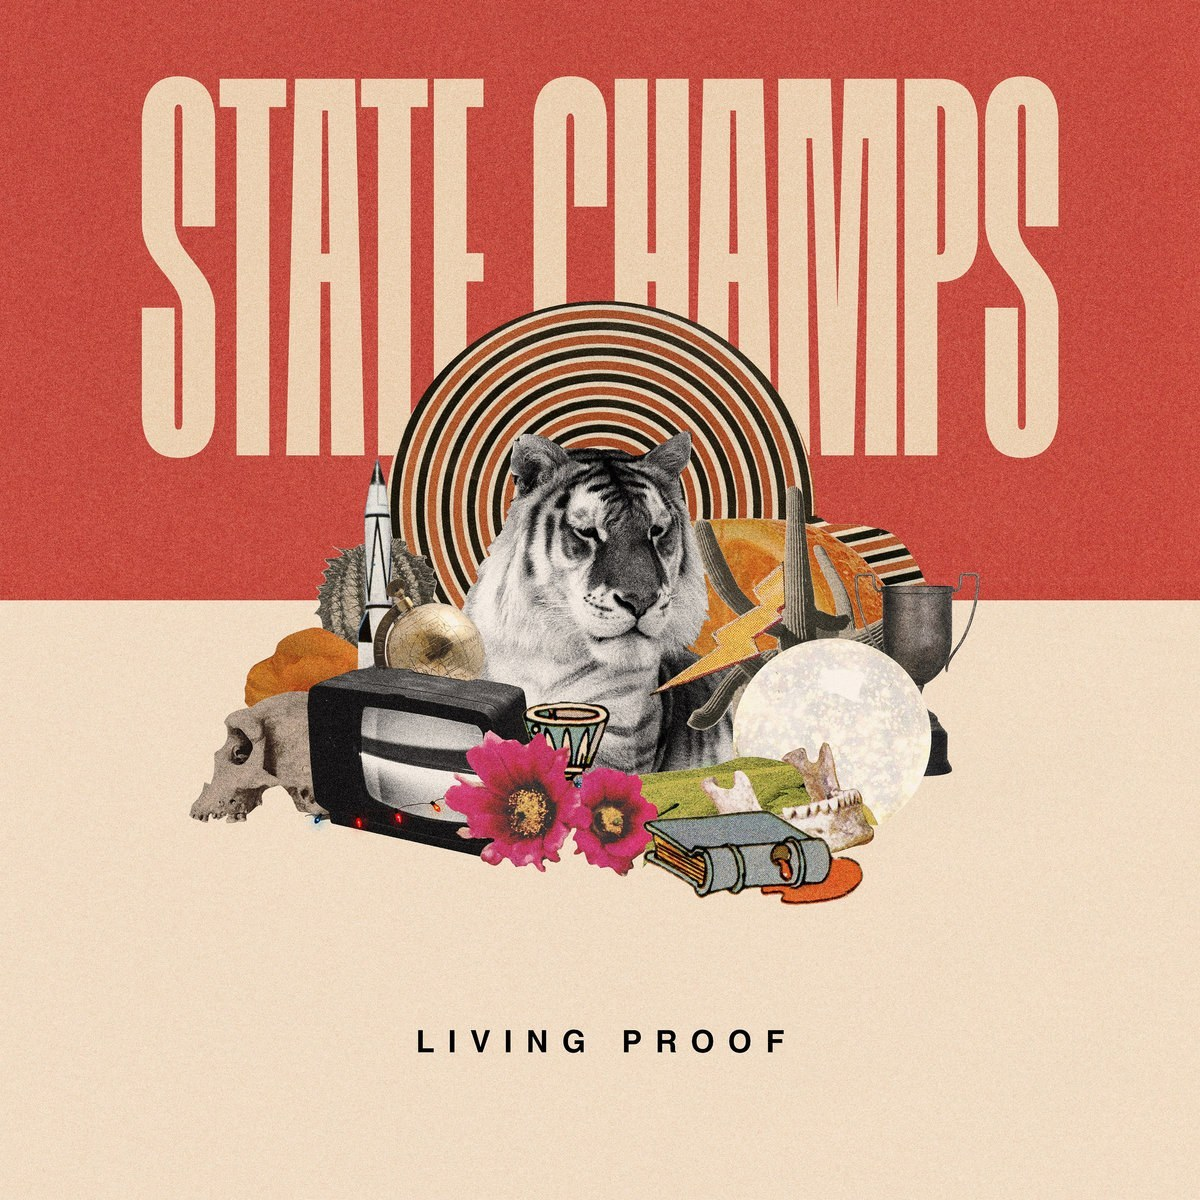 On 'Living Proof', State Champs sound bigger than ever